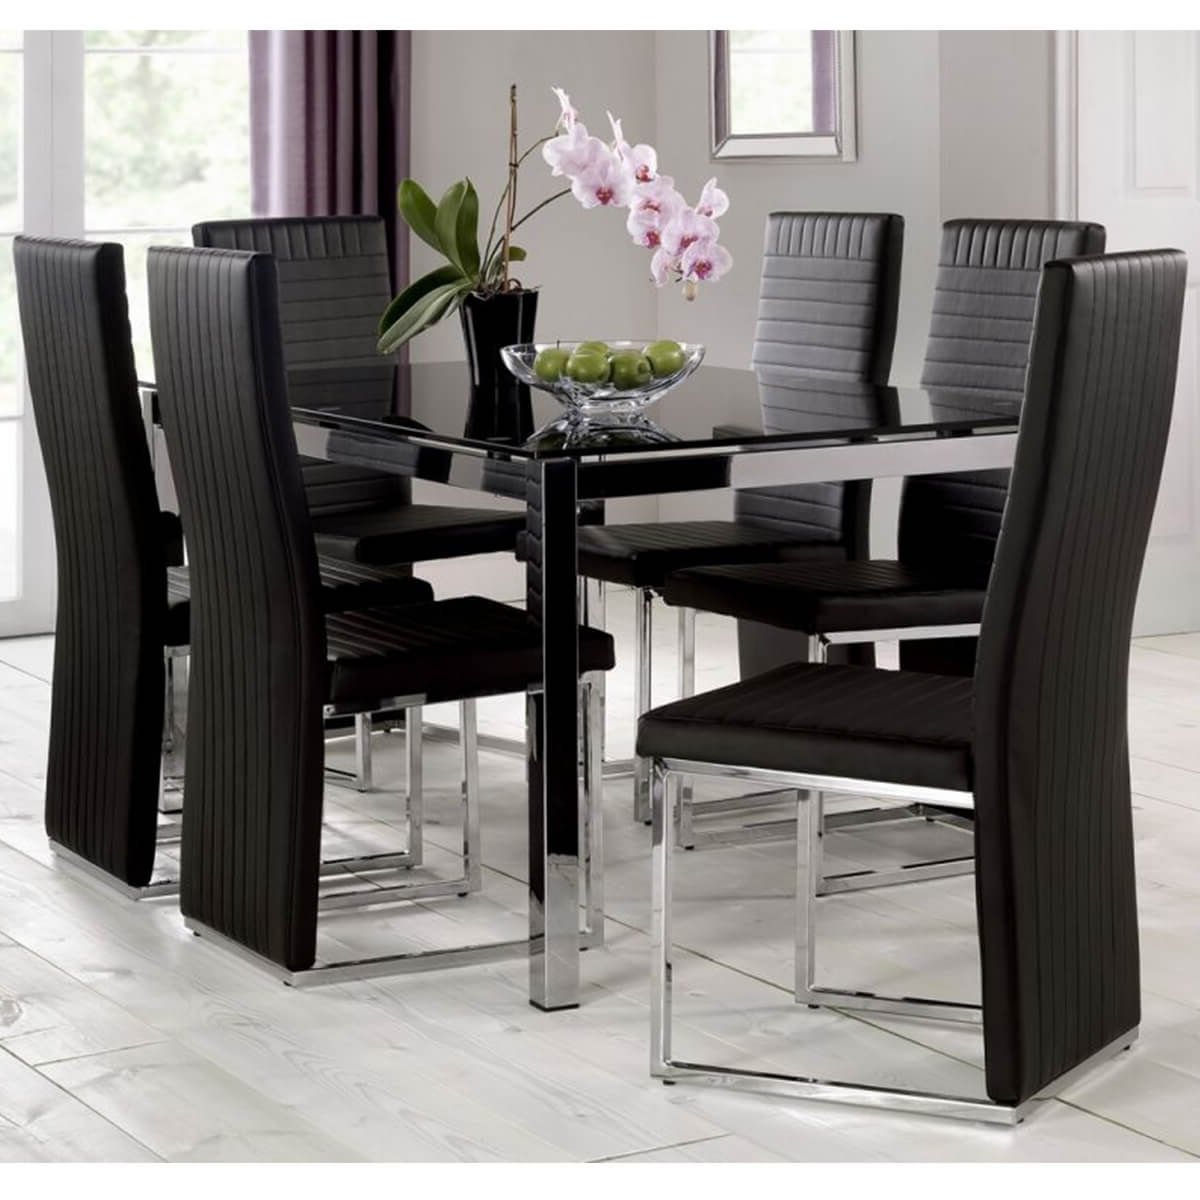 Black Glass Dining Tables And 6 Chairs Pertaining To Fashionable Tempo Black Dining Table With Black Chairs (Gallery 8 of 25)